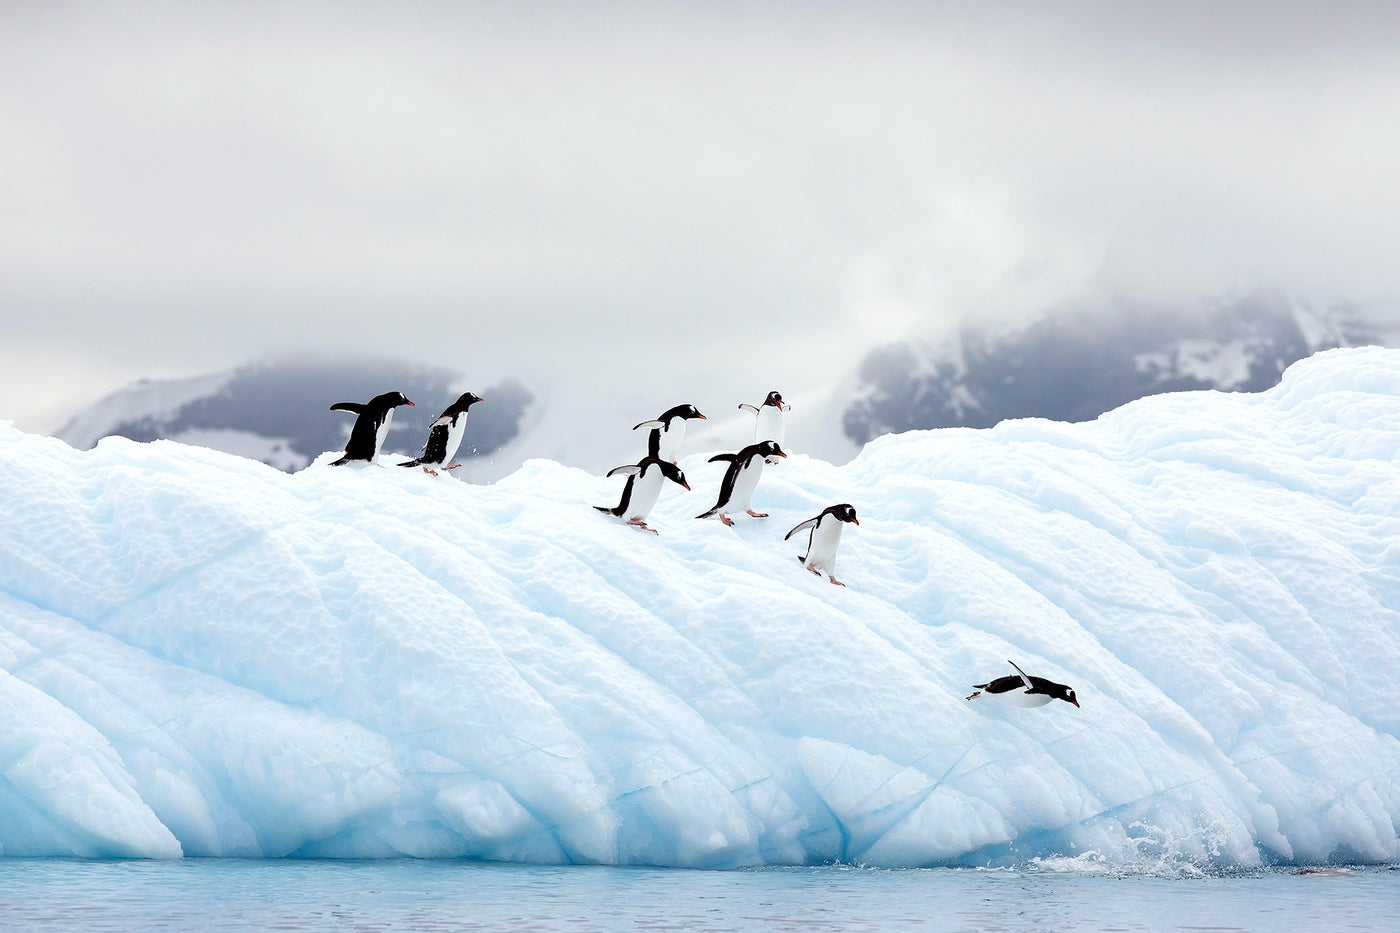 A group of penguins taking the plunge off the ice shelf to begin their fishing journeys